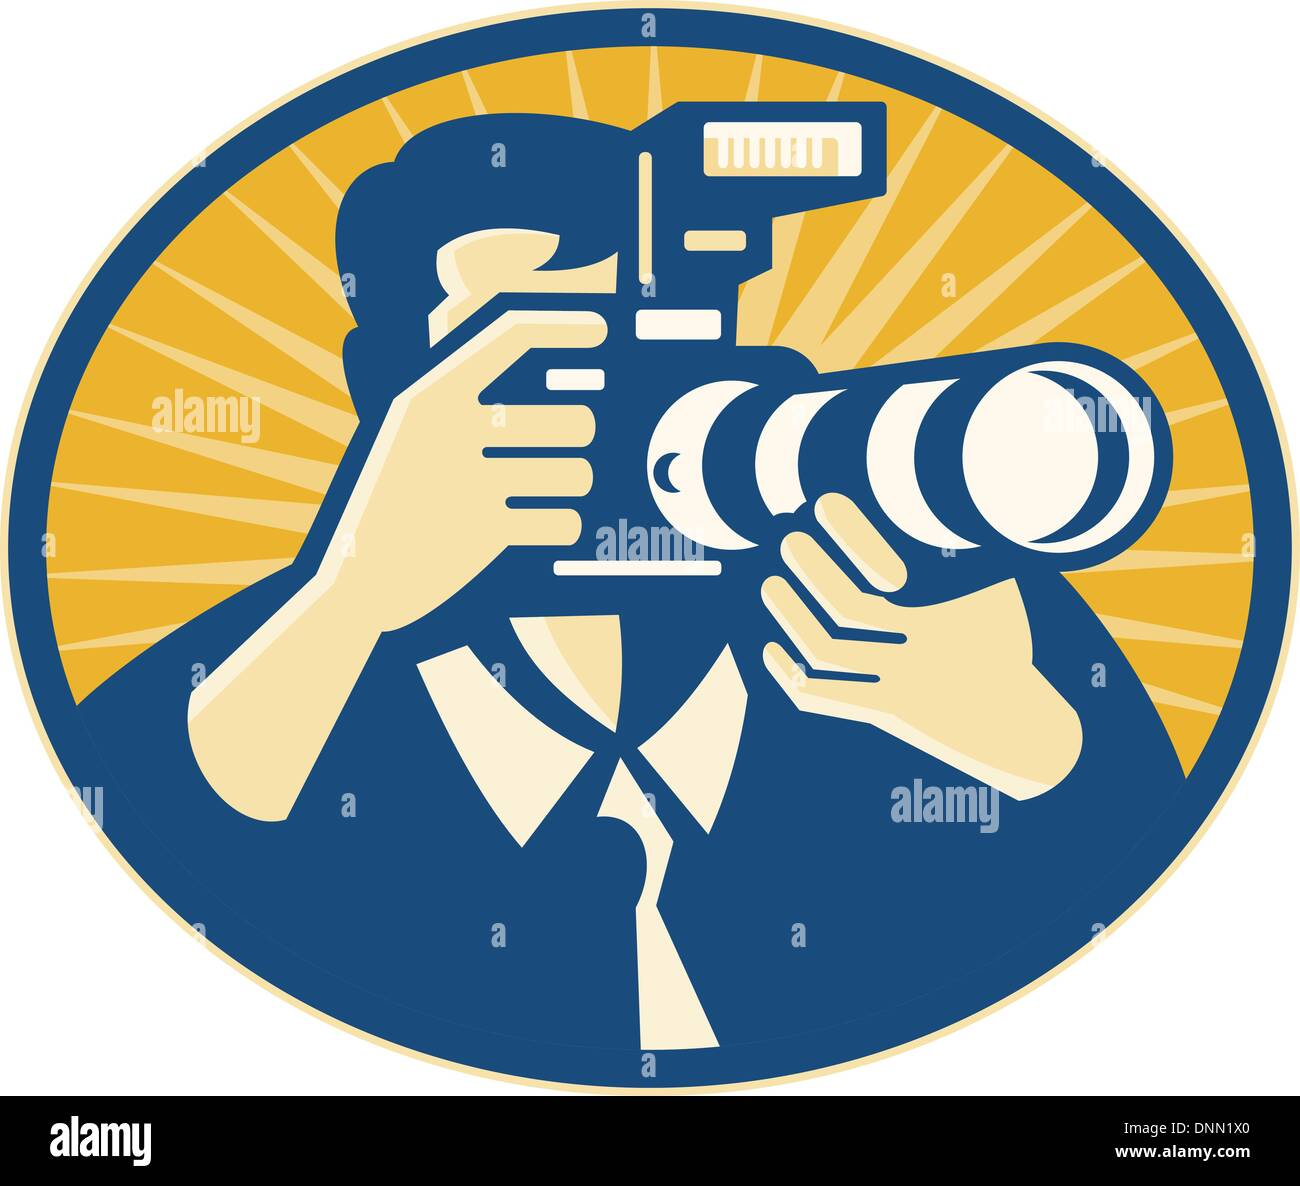 Illustration of a photographer shooting DSLR camera with flash and zoom lens set inside ellipse done in retro style. - Stock Image